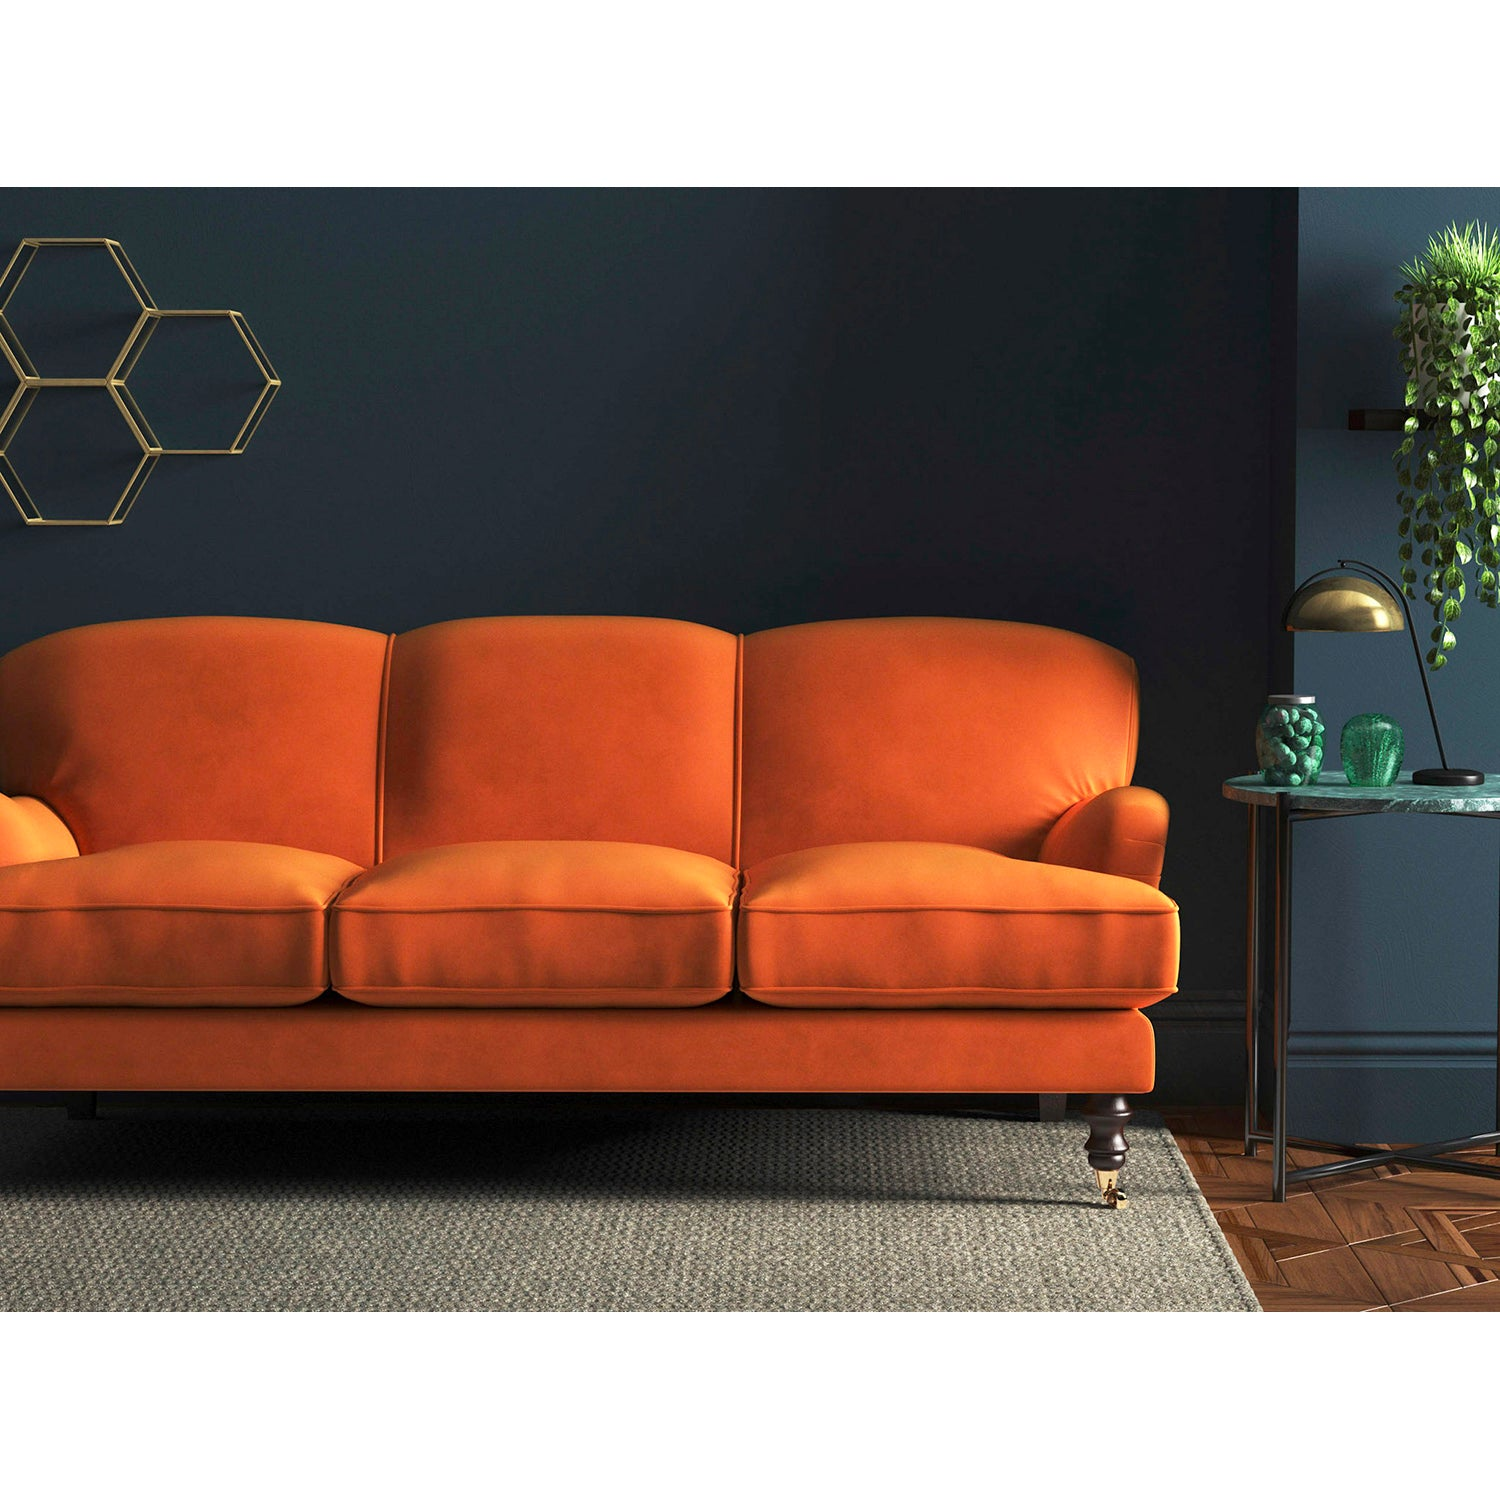 Sofa in a luxury bright orange velvet upholstery fabric with a stain resistant finish